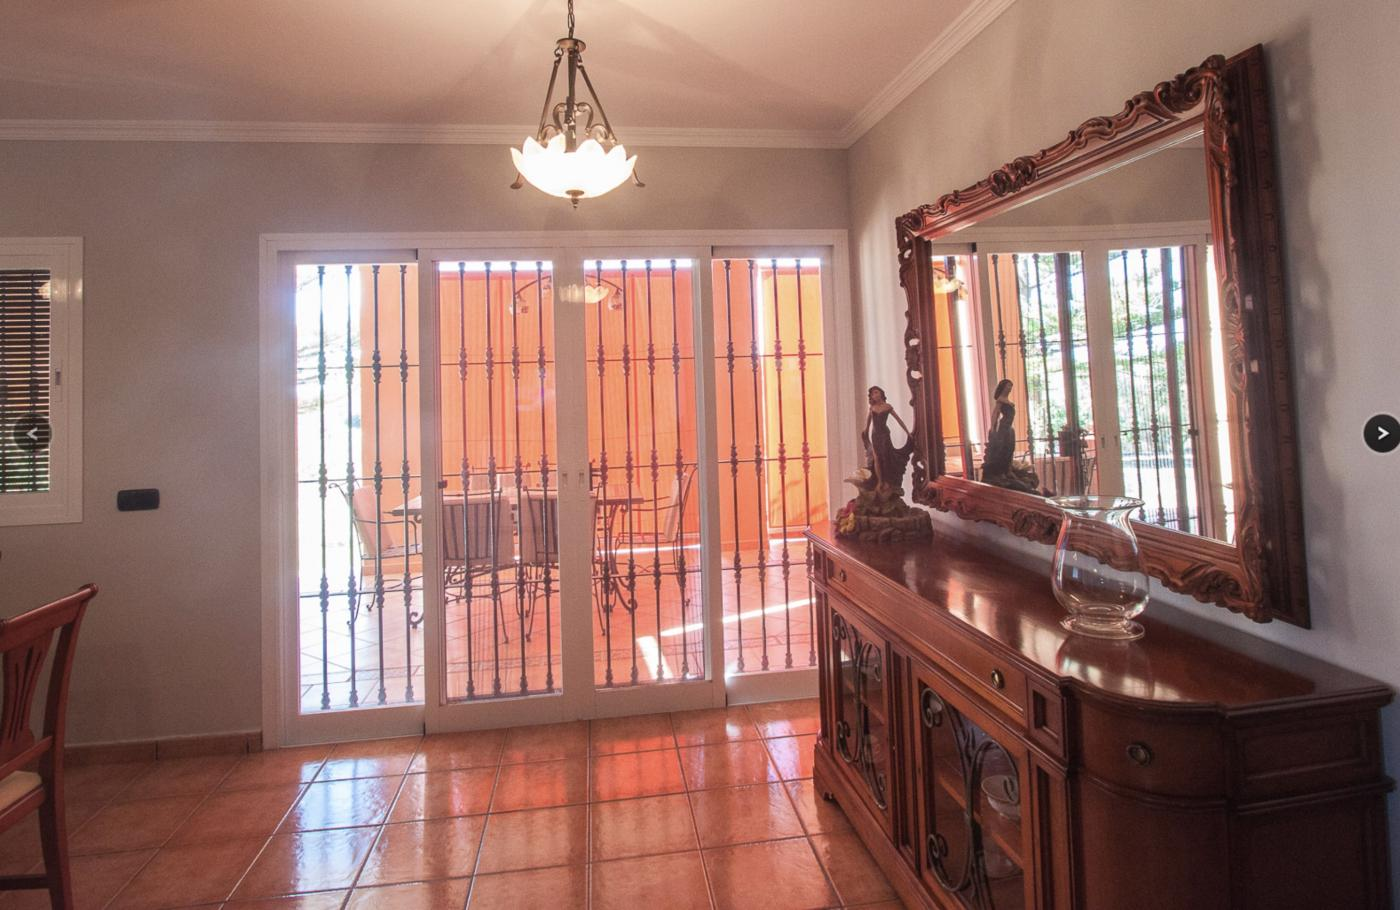 3 Bedroom Country House with guest accommodation for Sale in Estepona